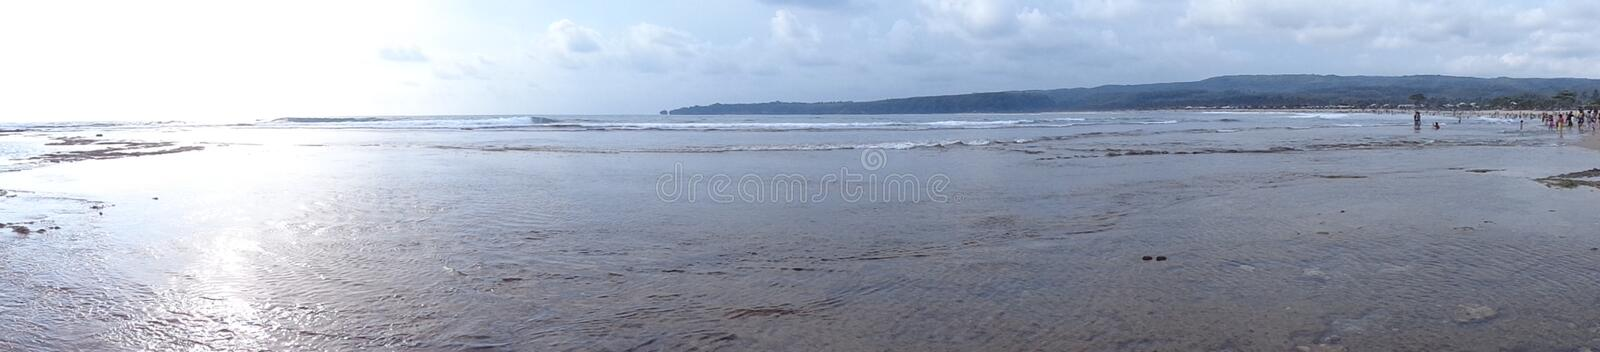 Landscape of beautiful beach with blue Sky, Banten, Indonesia royalty free stock image